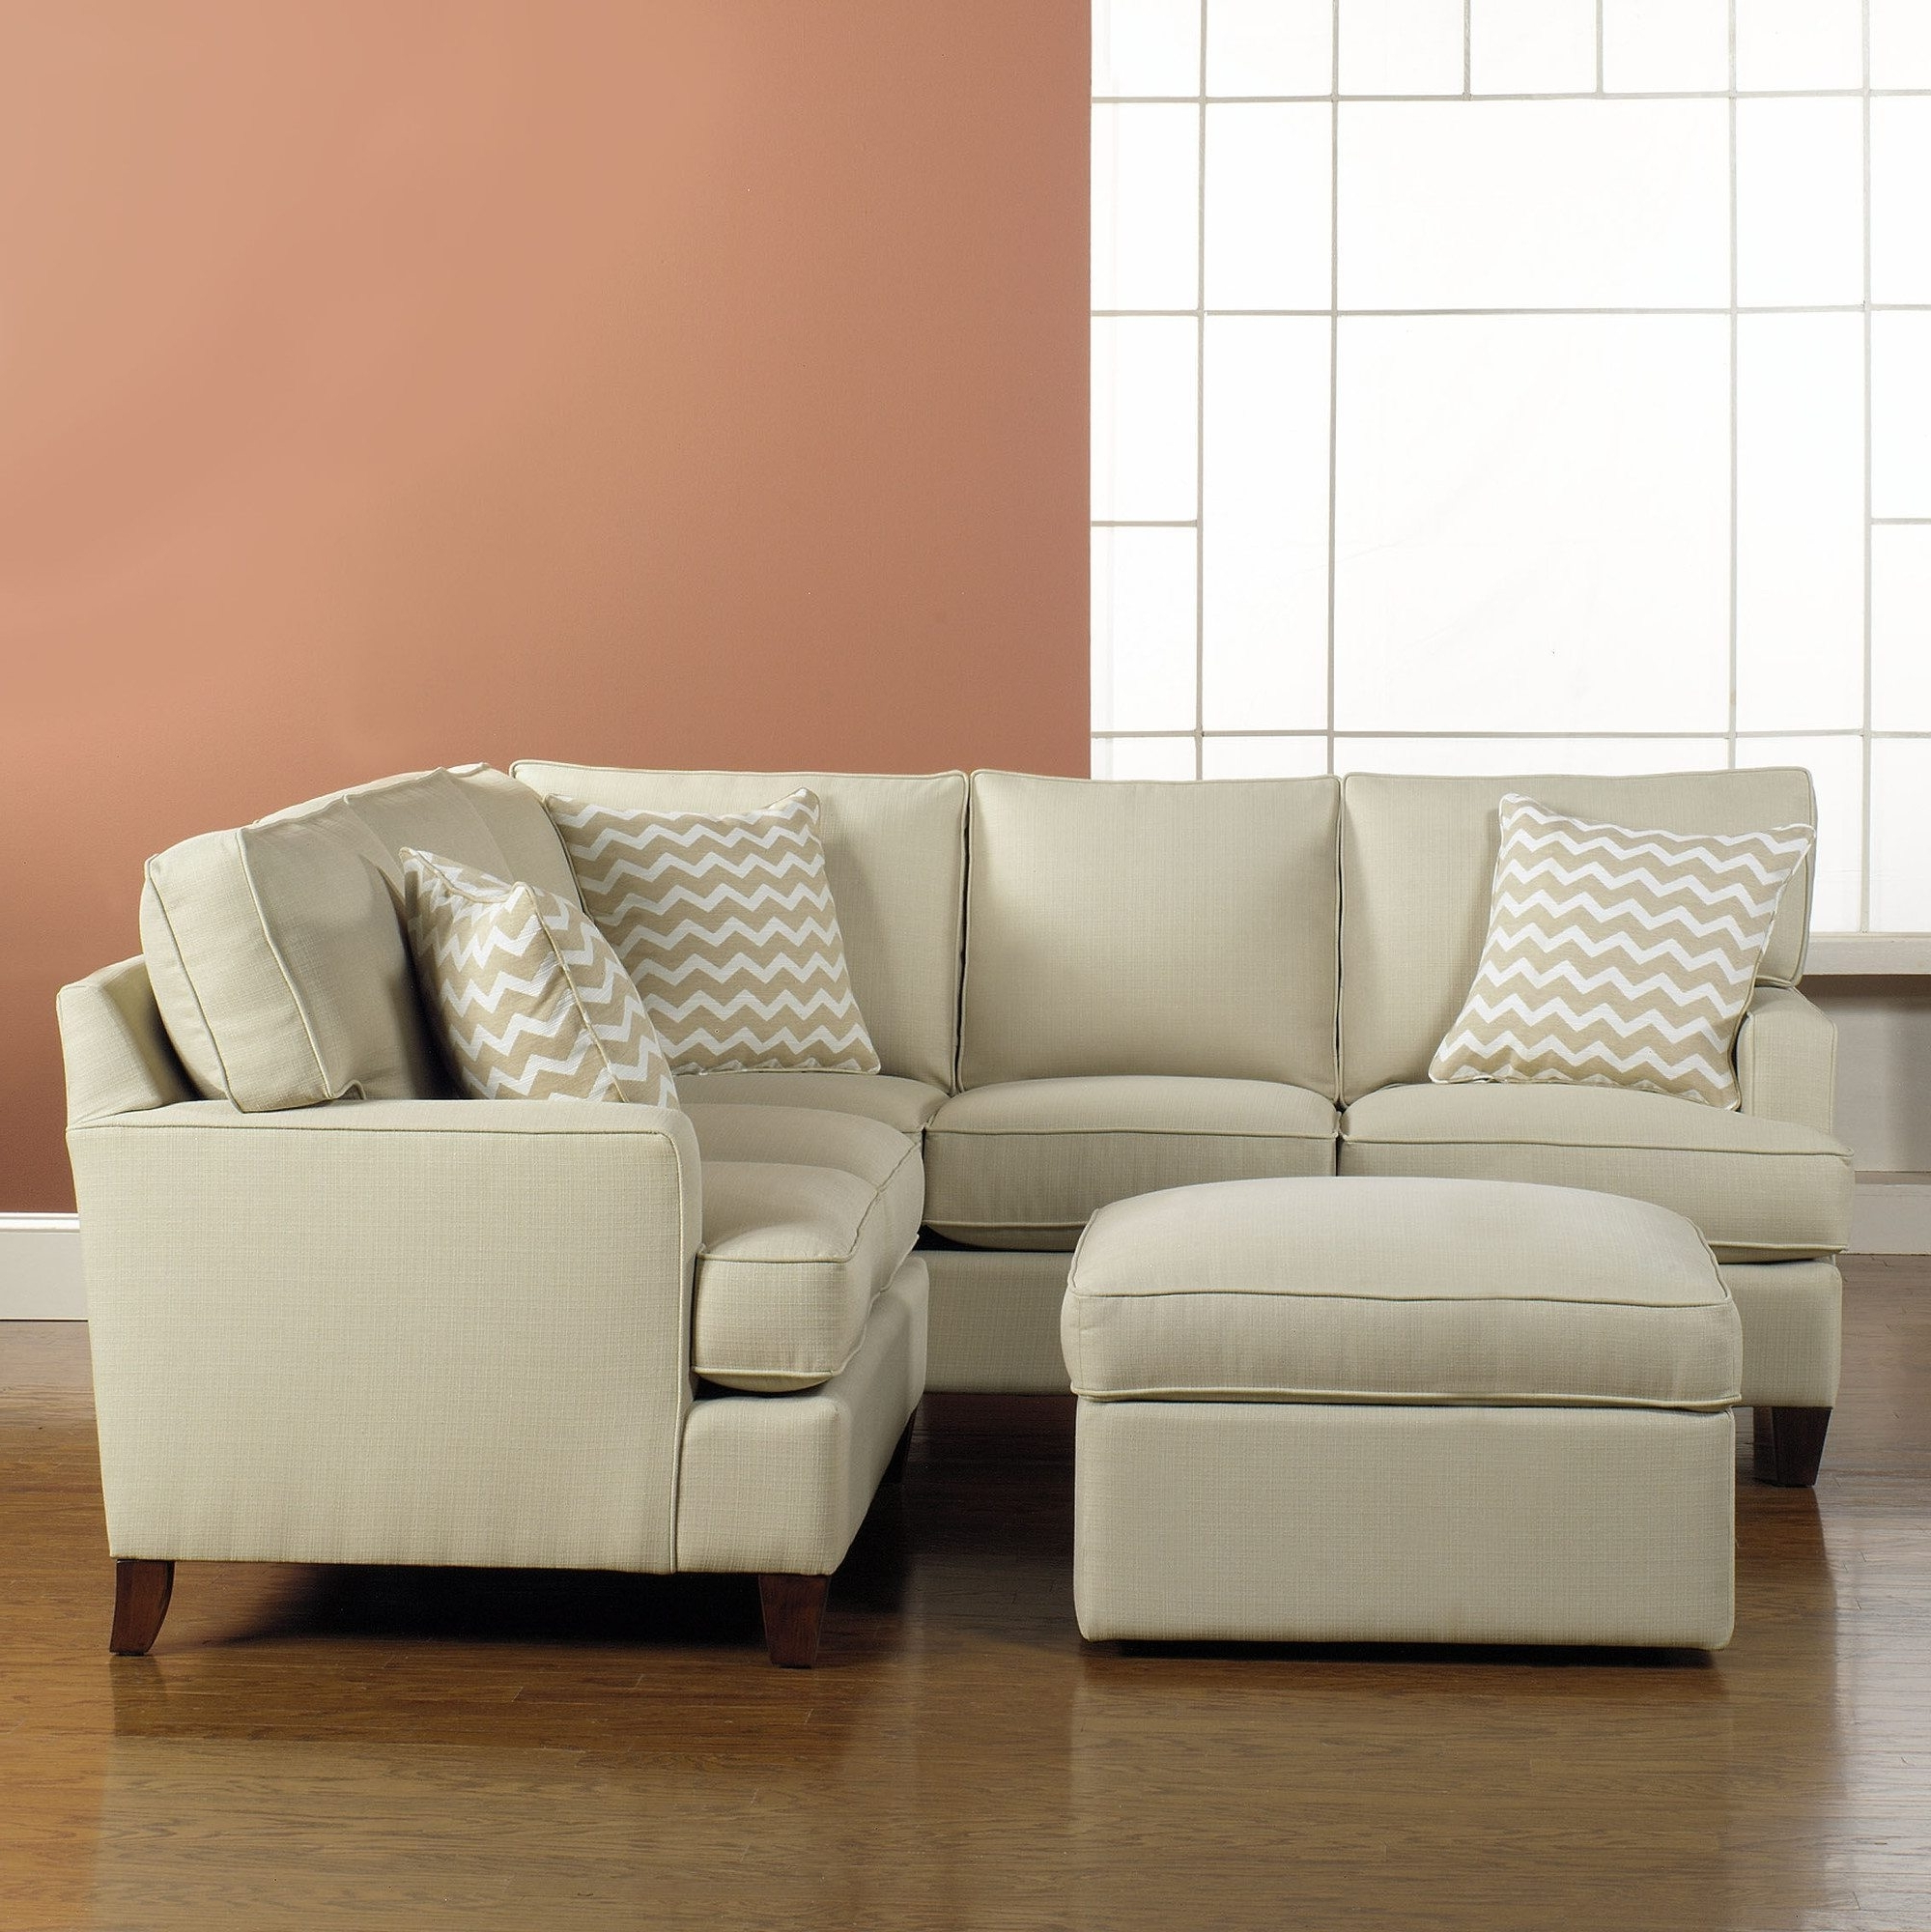 Sofa : Small 2 Piece Sectional Sofa Comfy Sectionals For Small Throughout Popular Comfy Sectional Sofas (View 14 of 20)